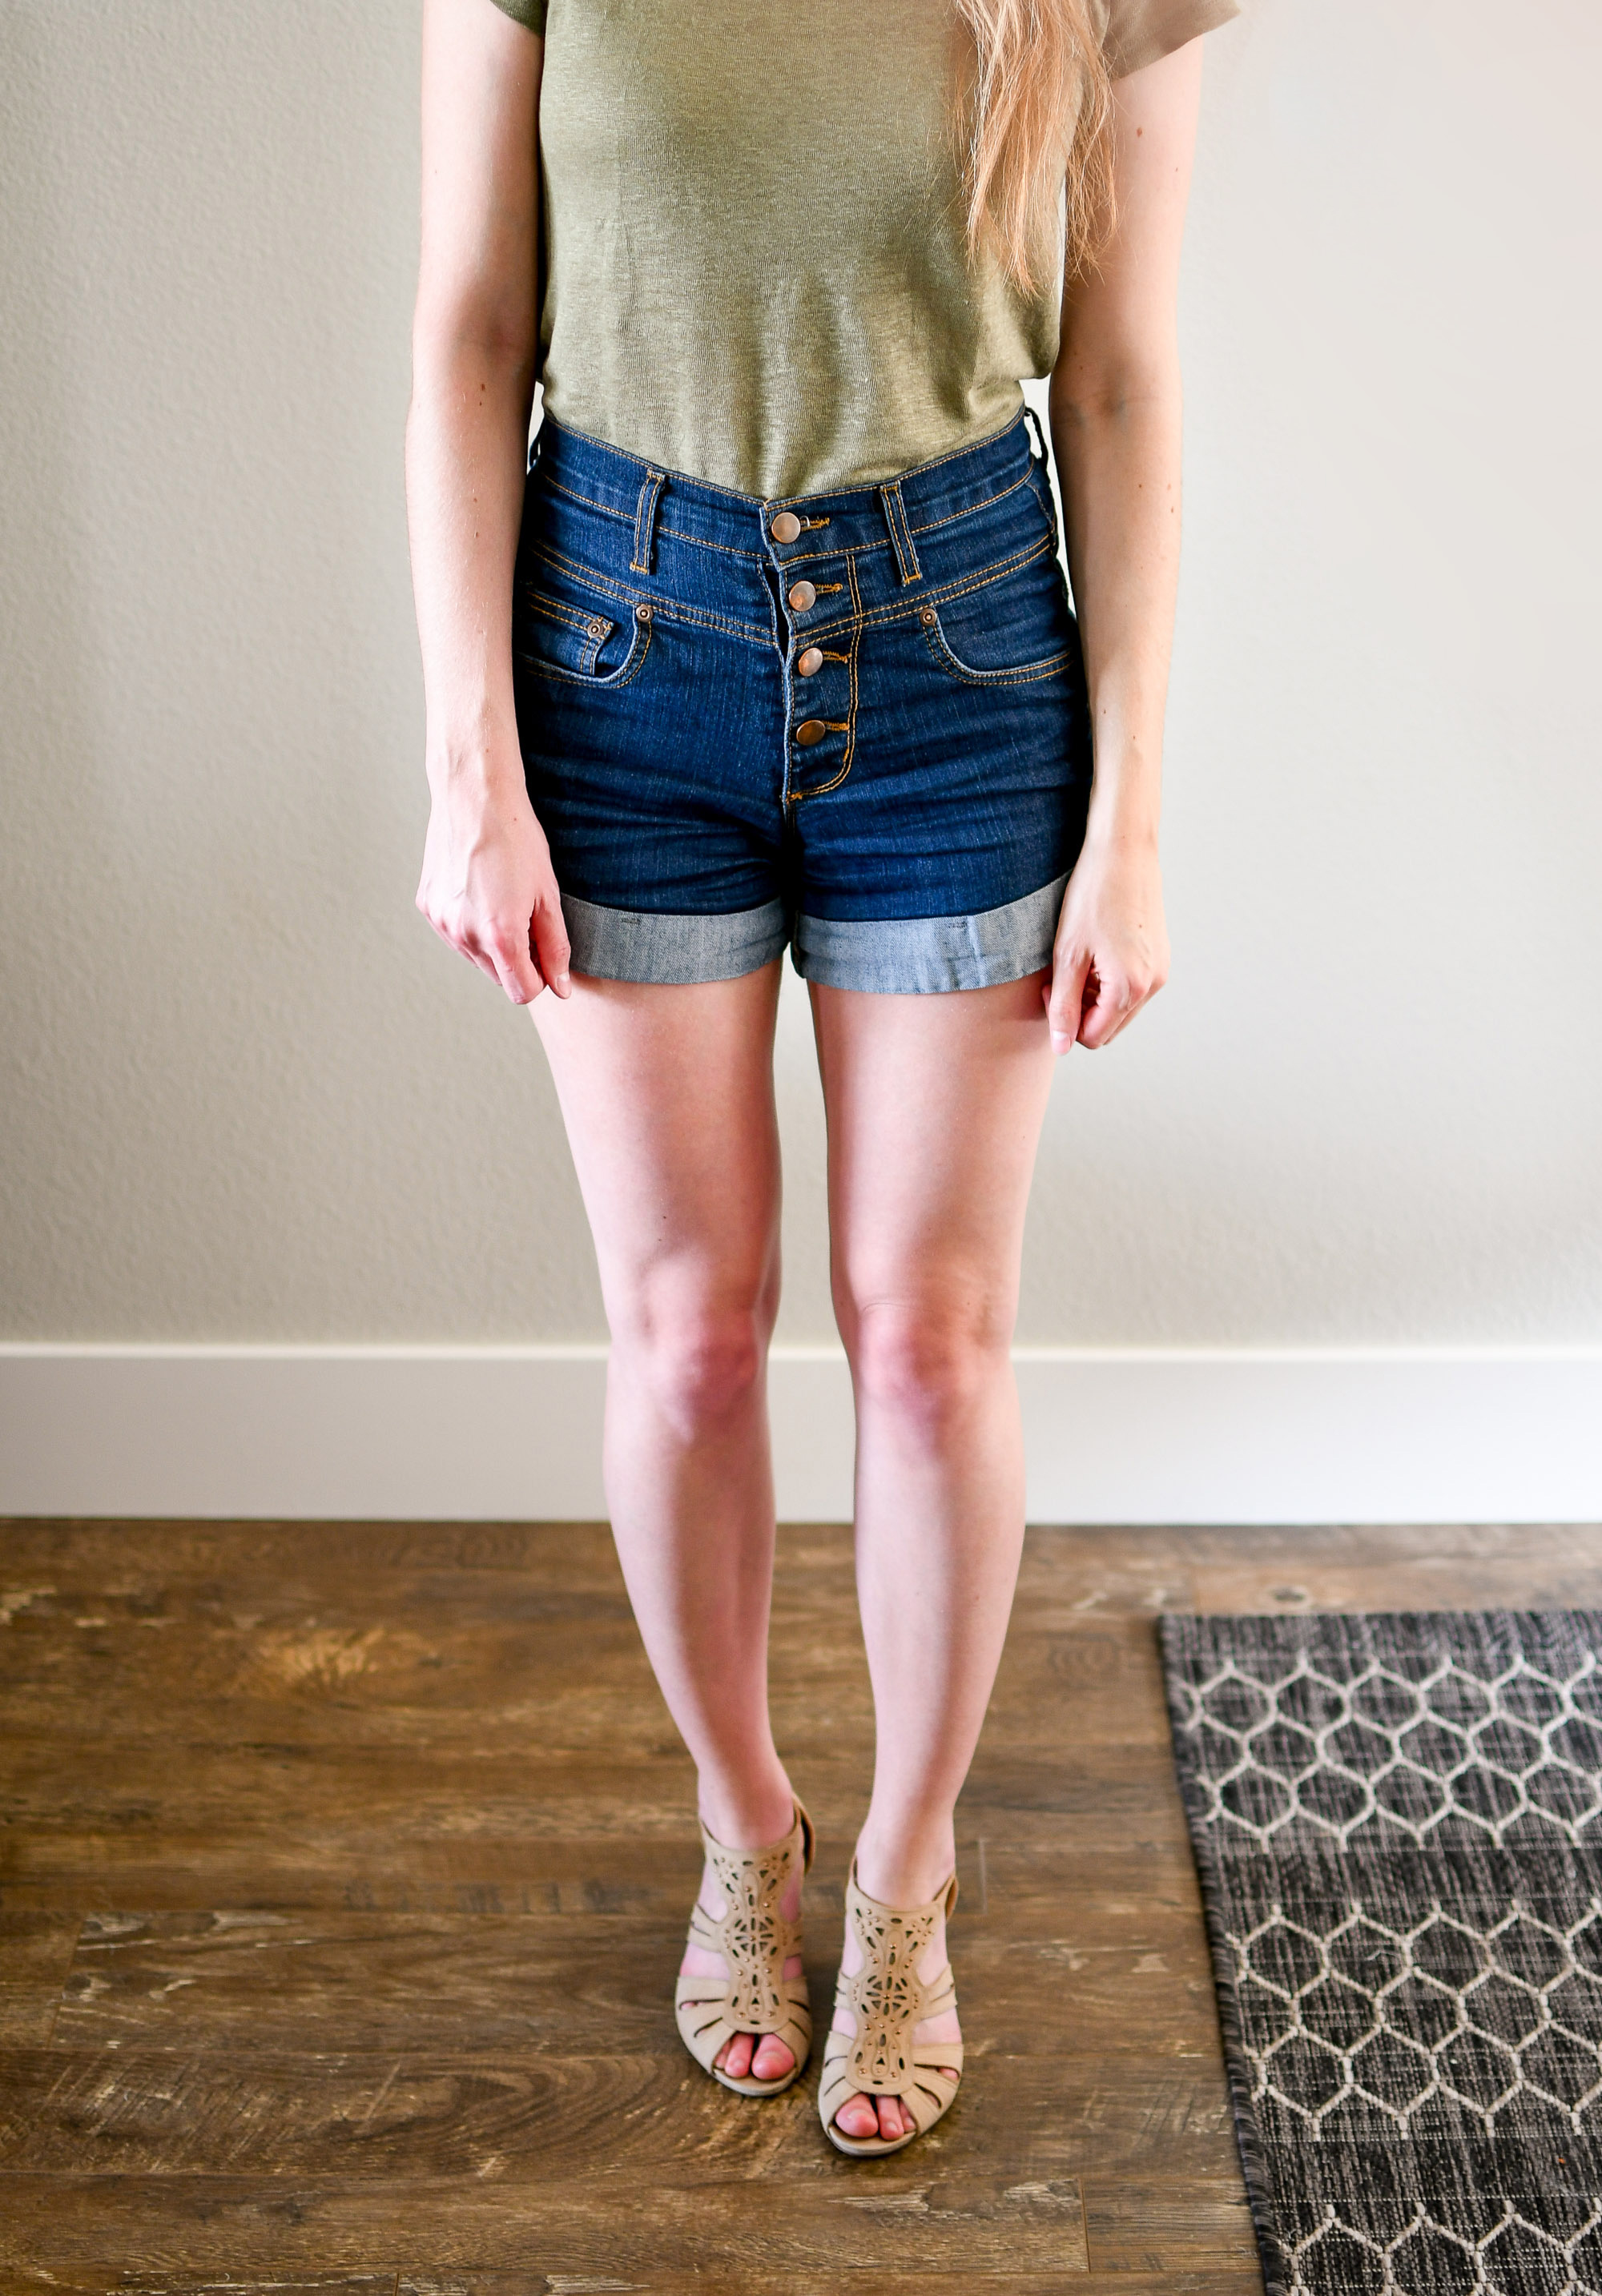 Denim shorts casual summer outfit with beige wedge sandals — Cotton Cashmere Cat Hair